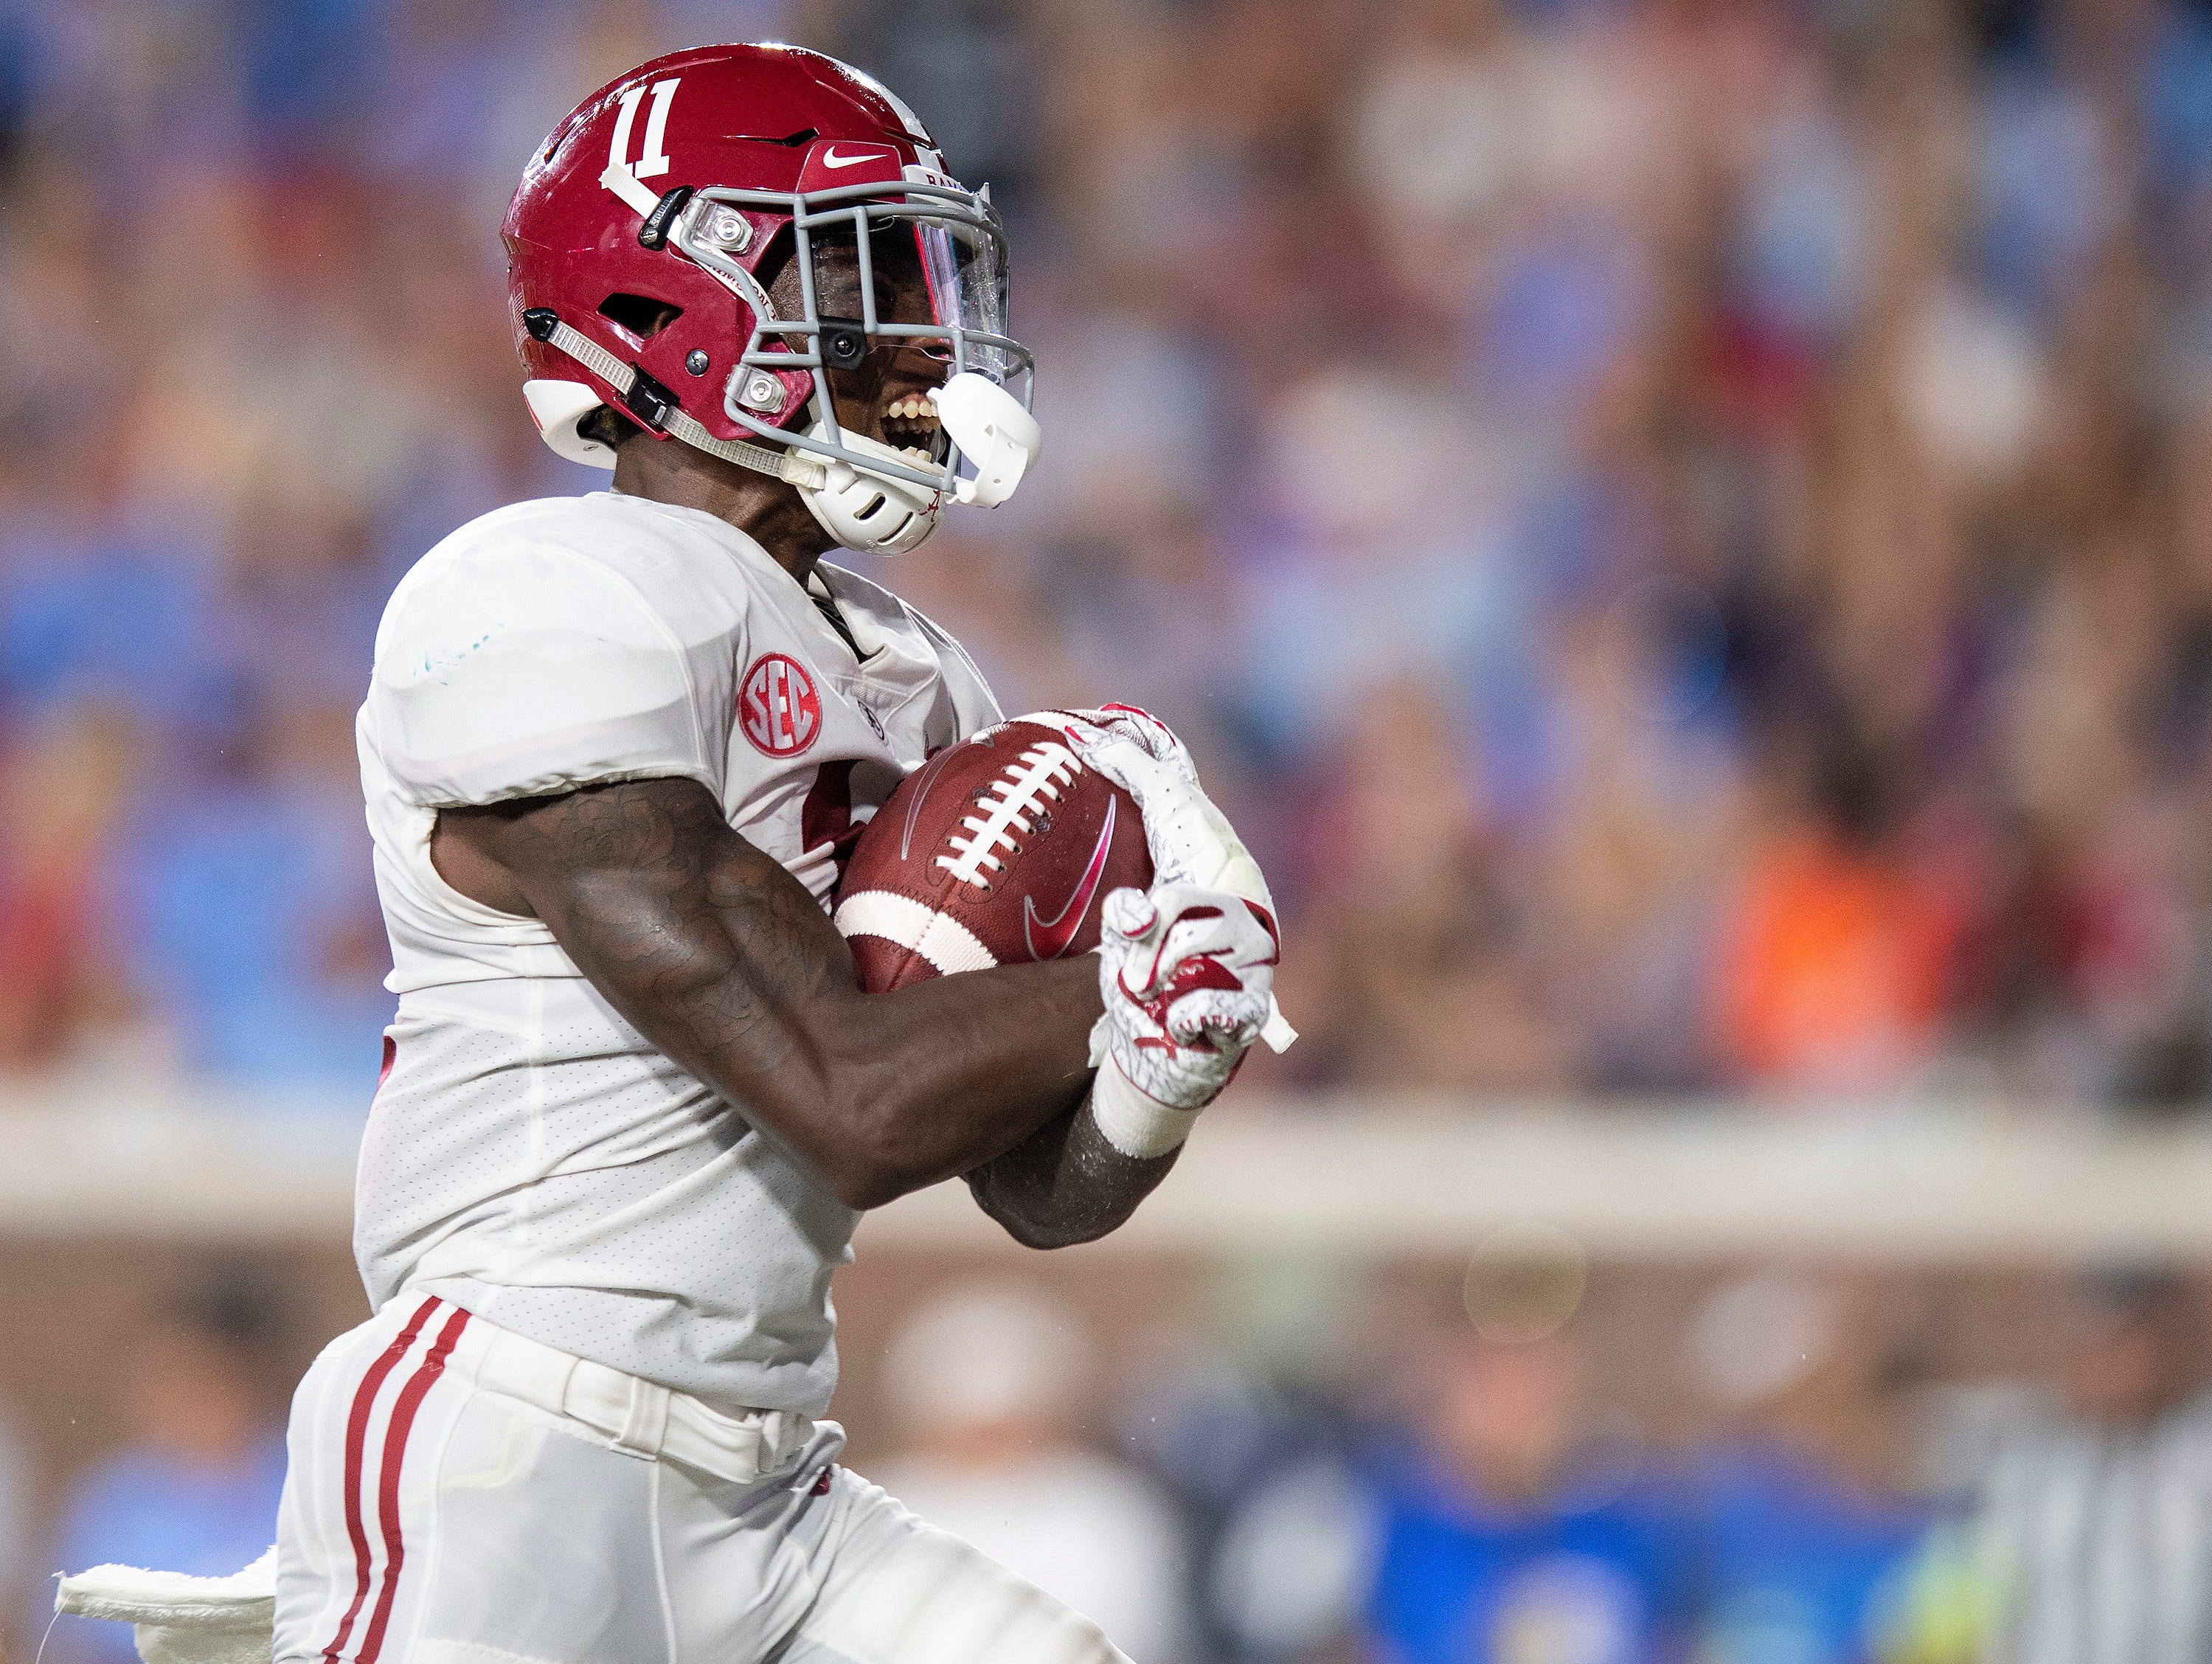 Alabama wide receiver Henry Ruggs, III, (11) scores a touchdown In first half action in Oxford, Ms., on Saturday September 15, 2018.